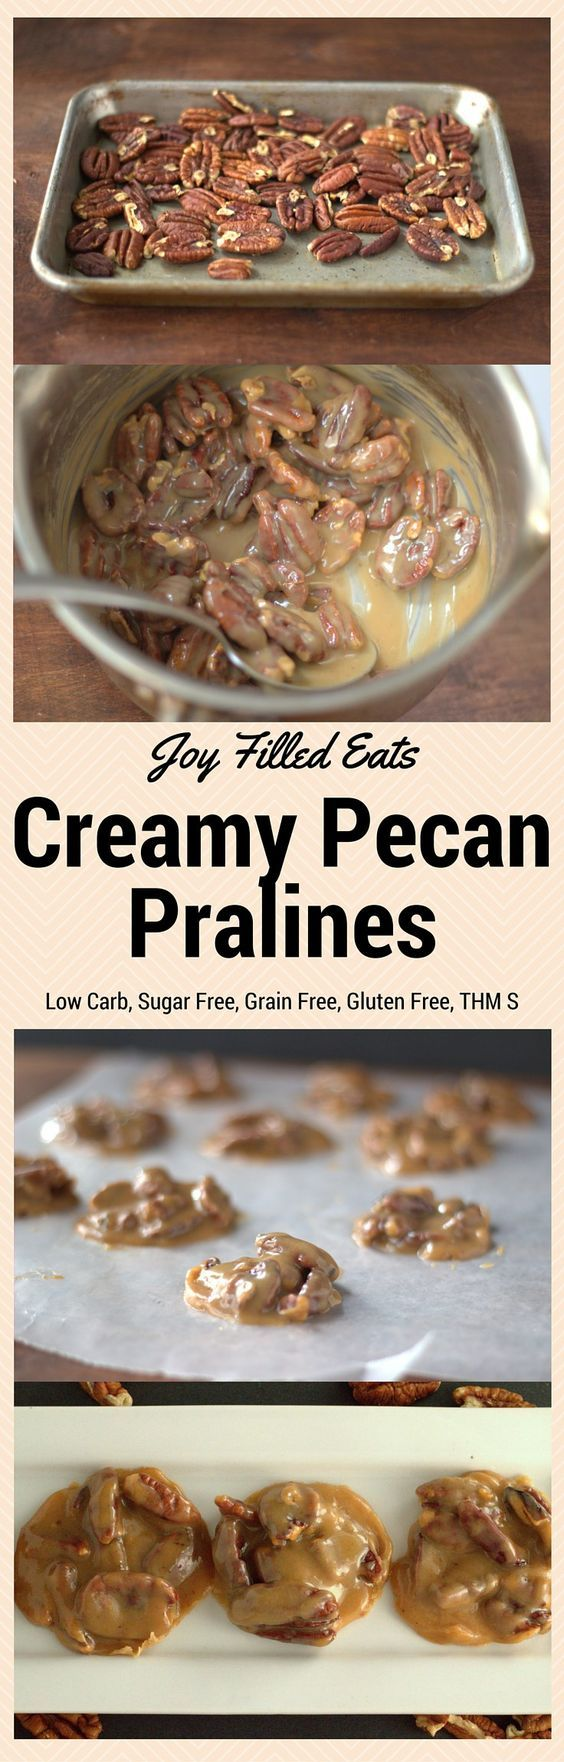 My Creamy Pecan Pralines will make you dream of New Orleans. They are low carb sugar free gluten free grain free and a THM S.